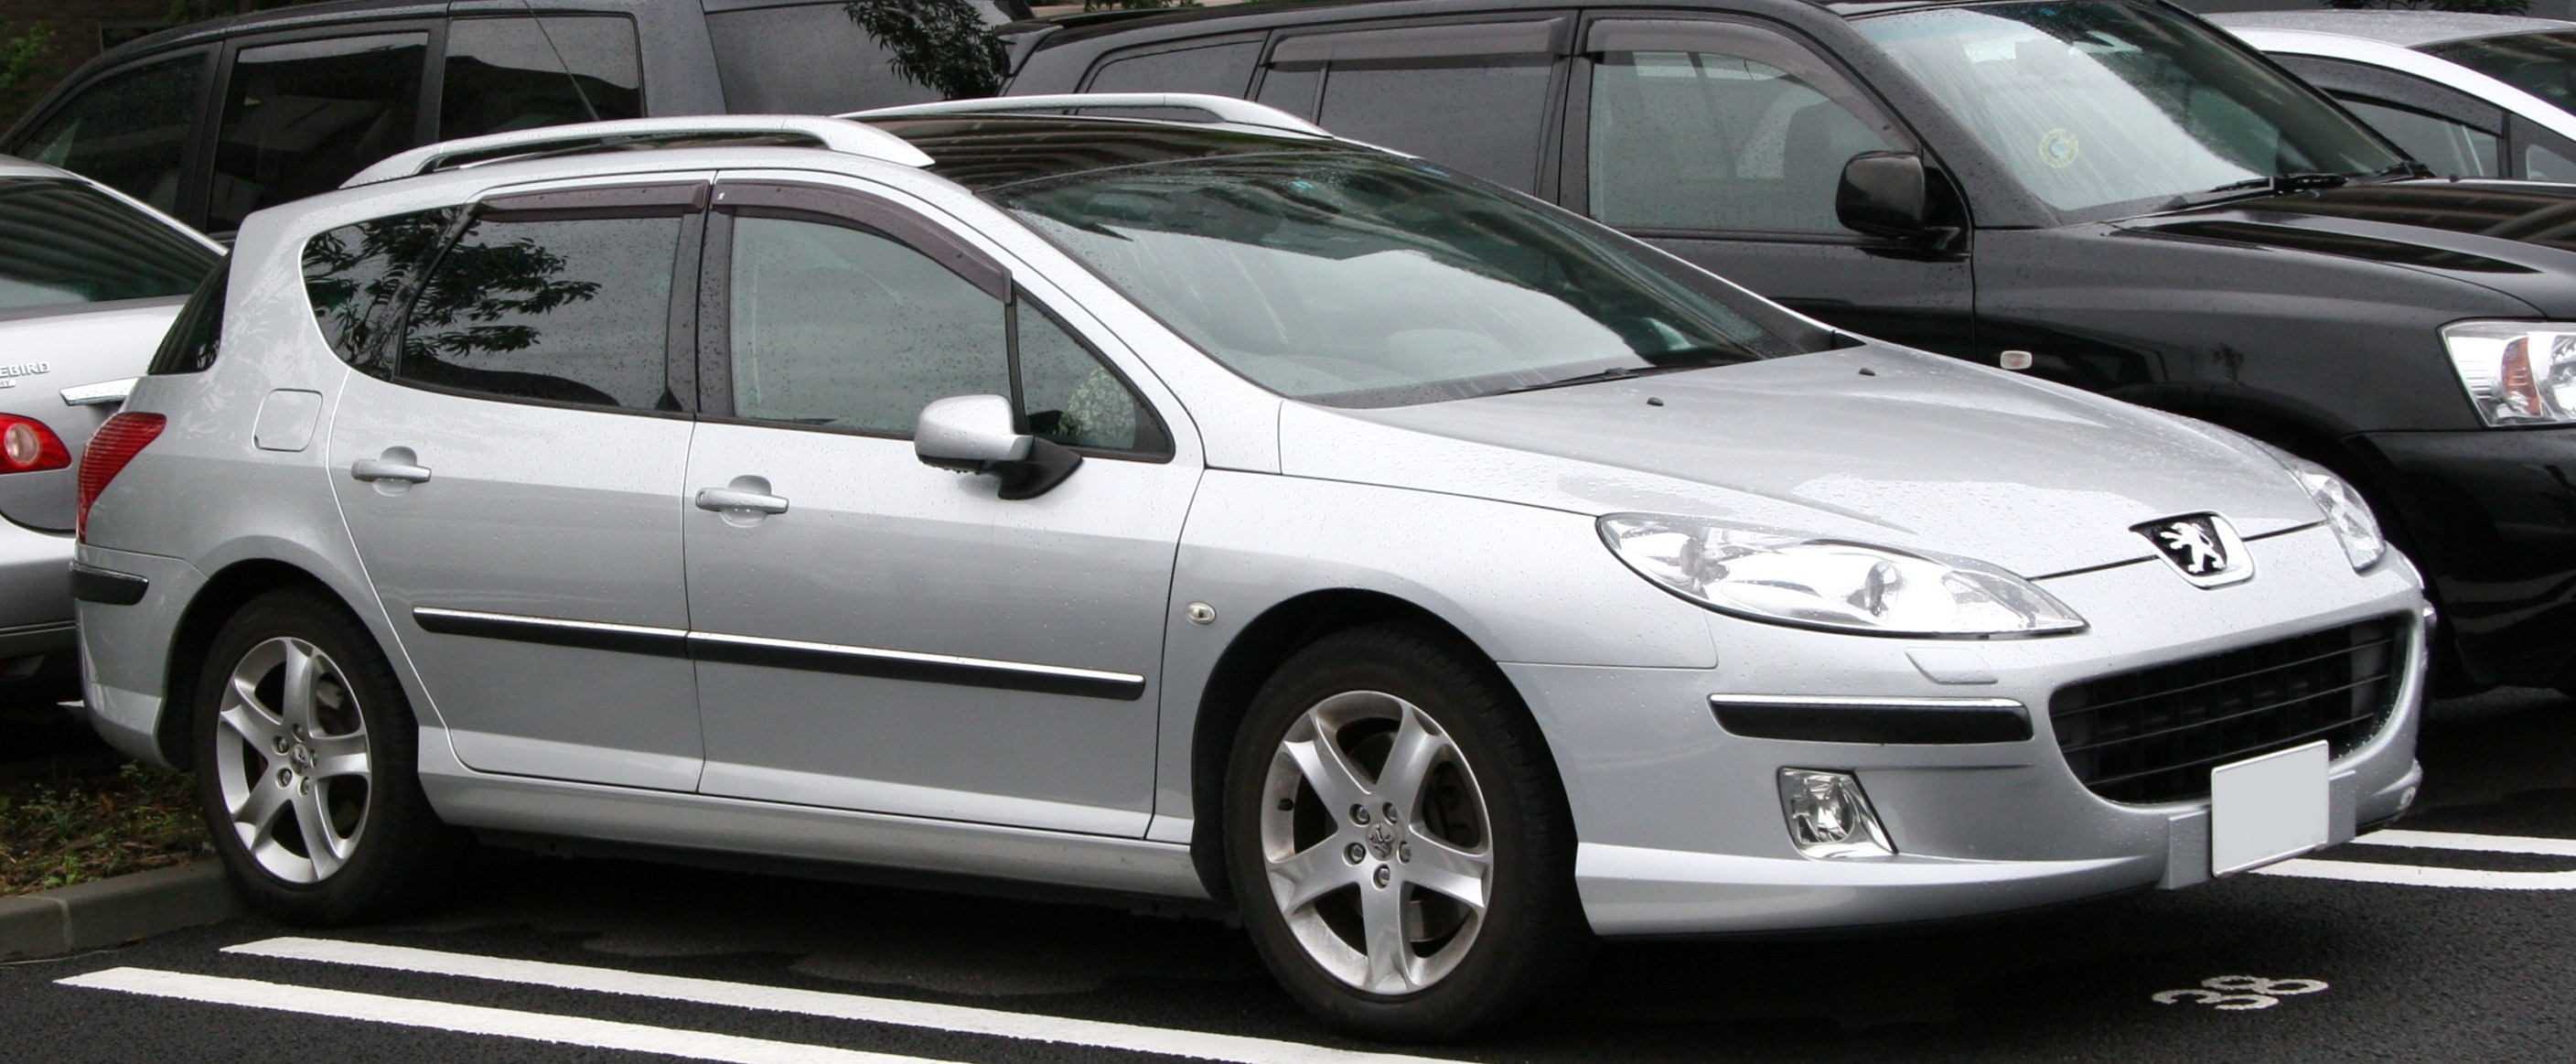 File 2005 2009 Peugeot 407 Sw Jpg Wikimedia Commons